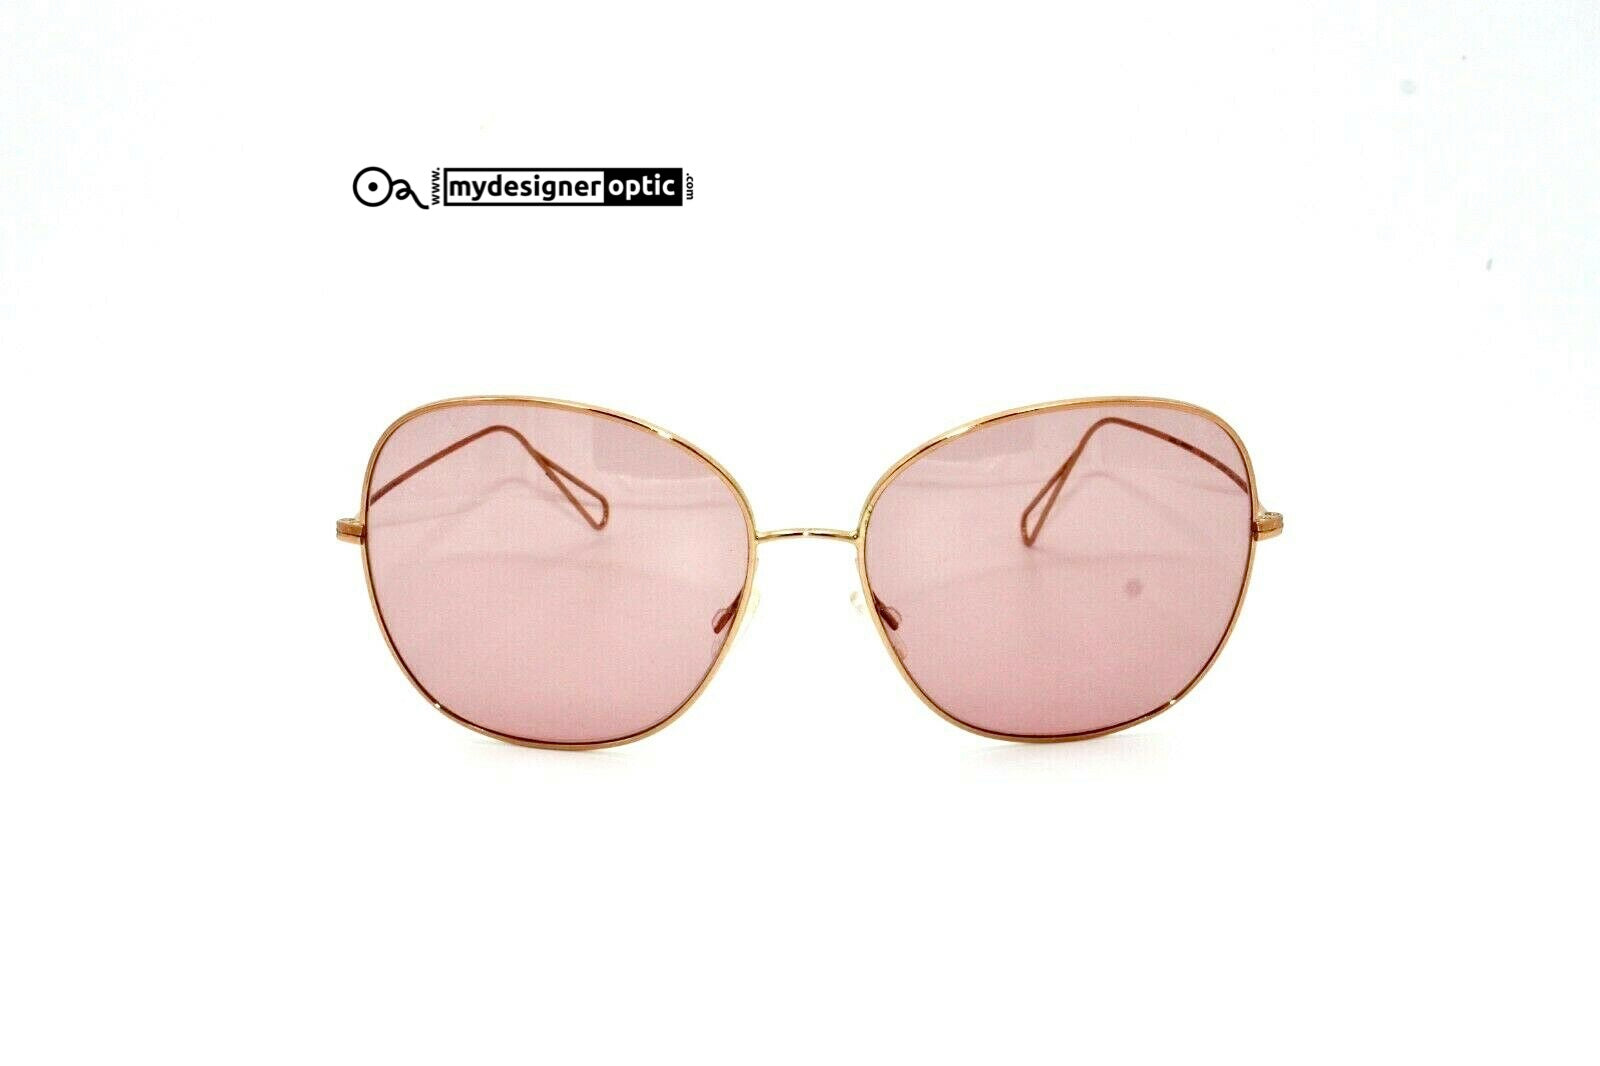 Tom Ford Sunglasses Vicky TF 184 20B 65-10 125 Made in Italy - Mydesigneroptic